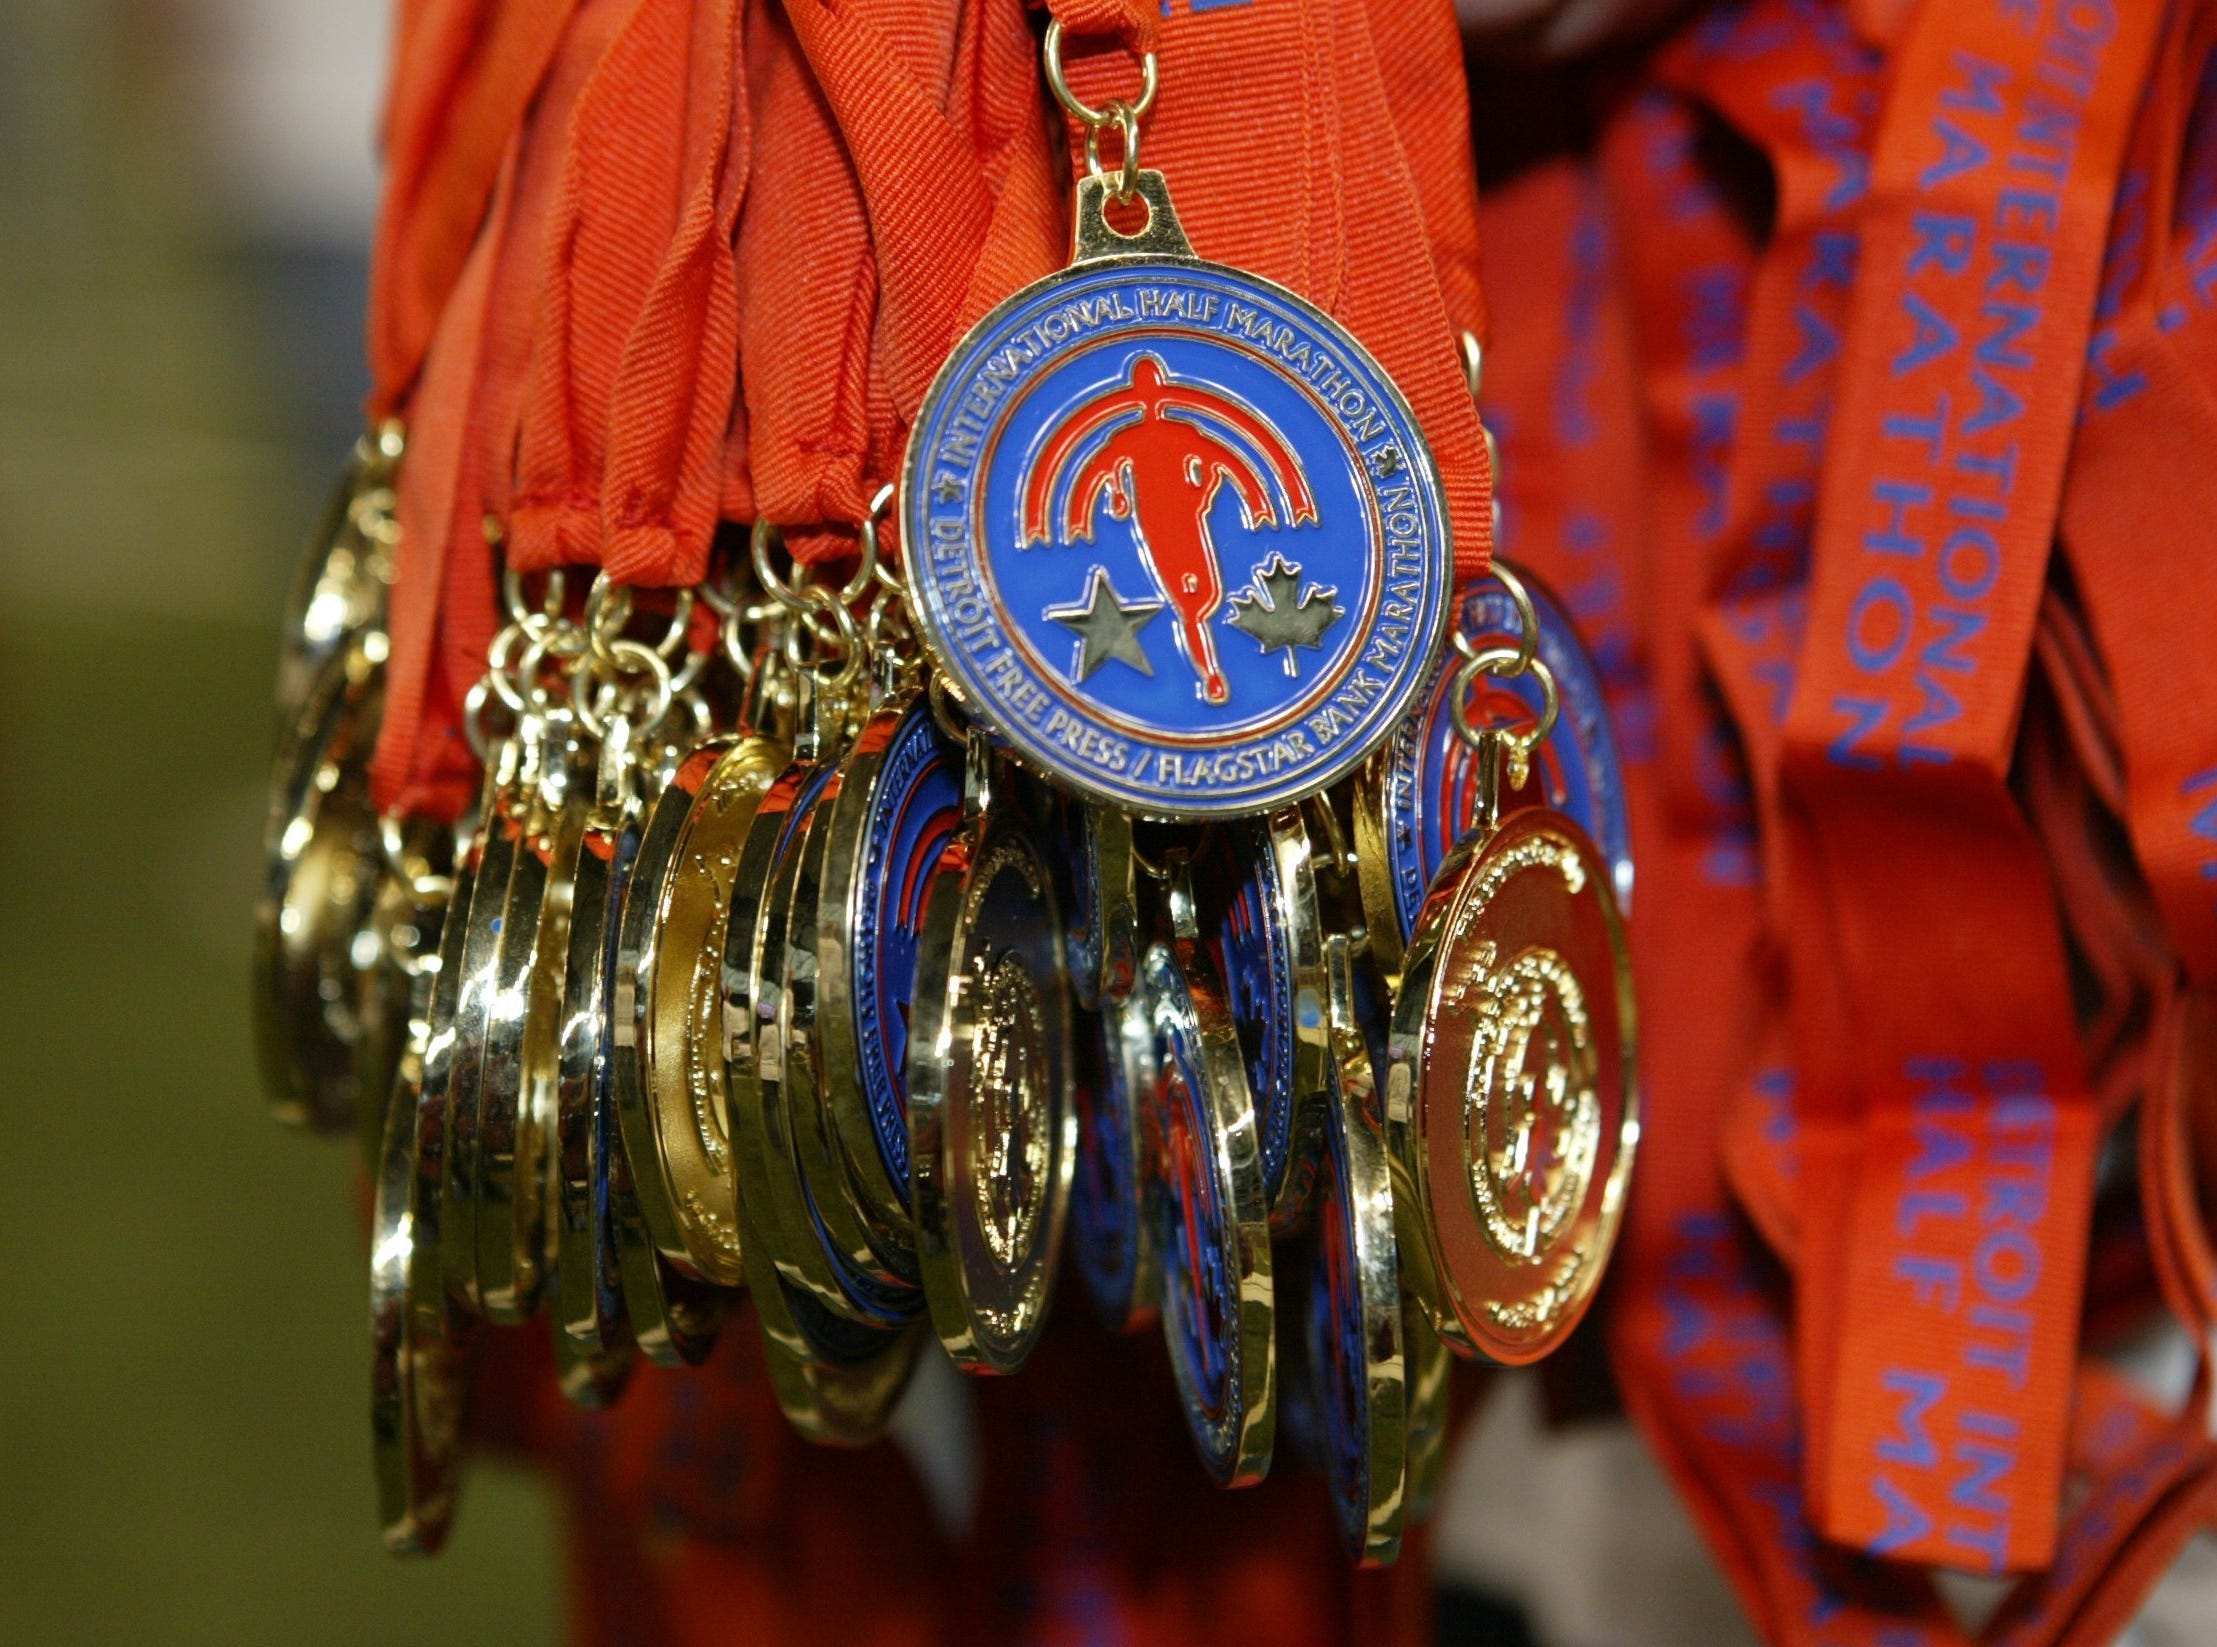 Medals await finishers as they hang at the finish lie of the 27th annual Detroit Free Press Marathon, Sunday, October 24, 2004 in Detroit, MI.